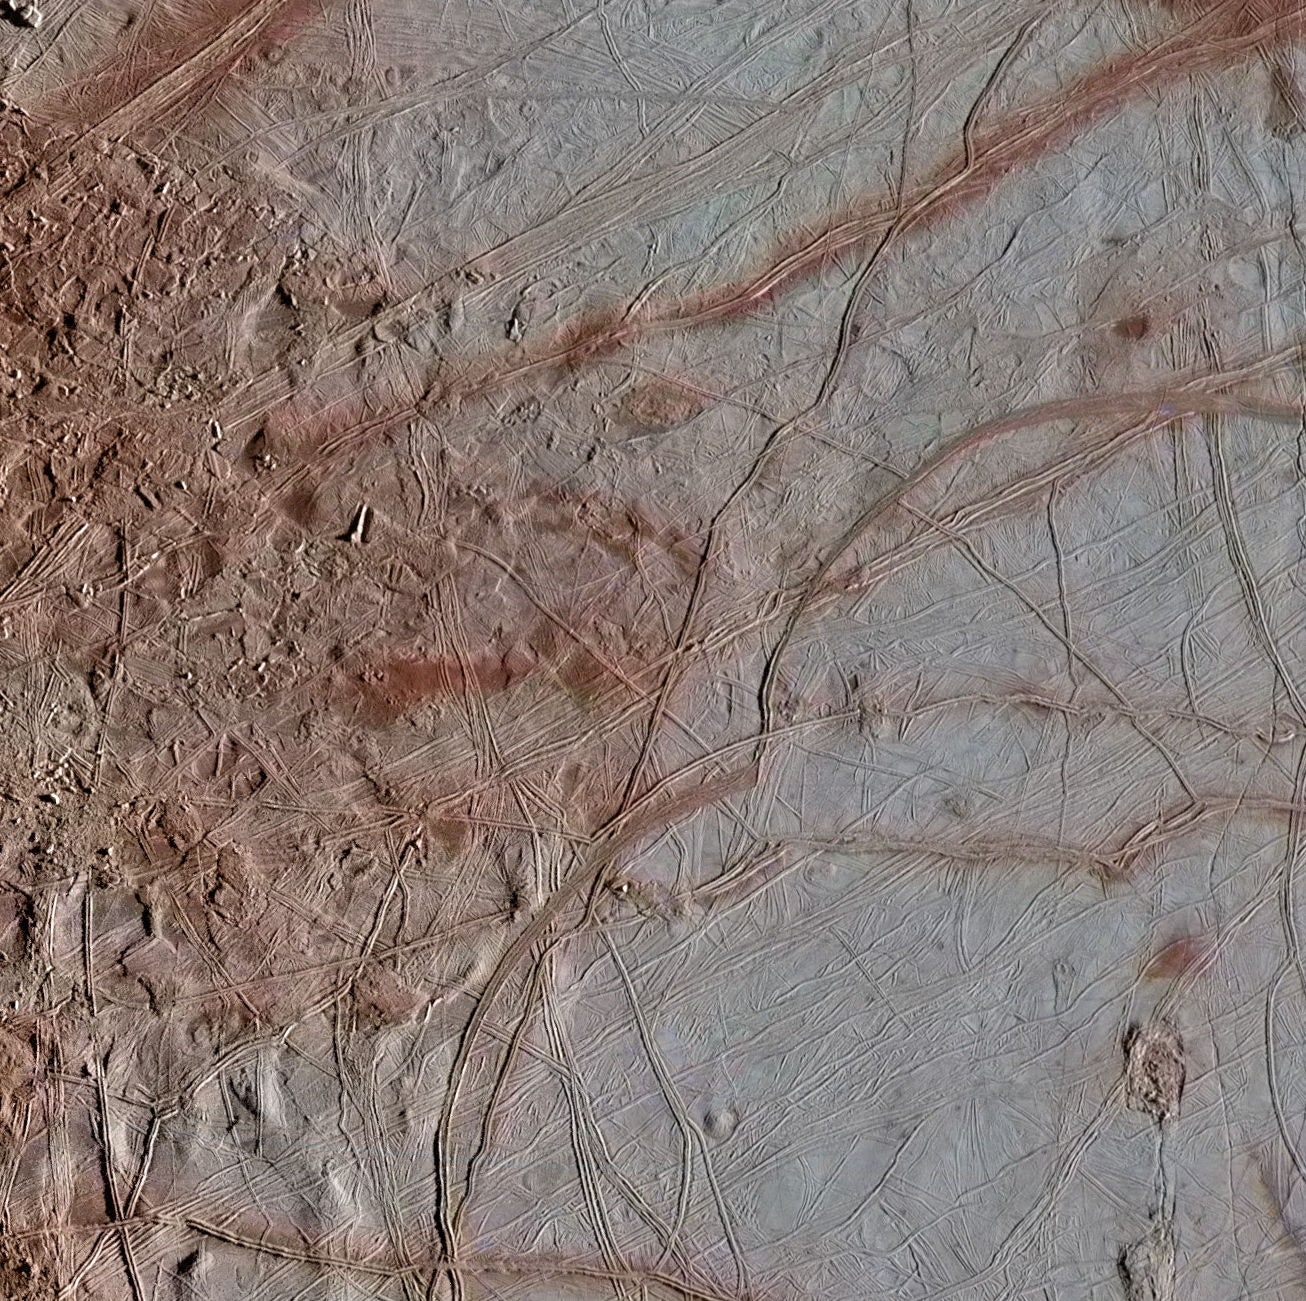 Space Photos of the Week: Europa! Attempt No Landing There Photography